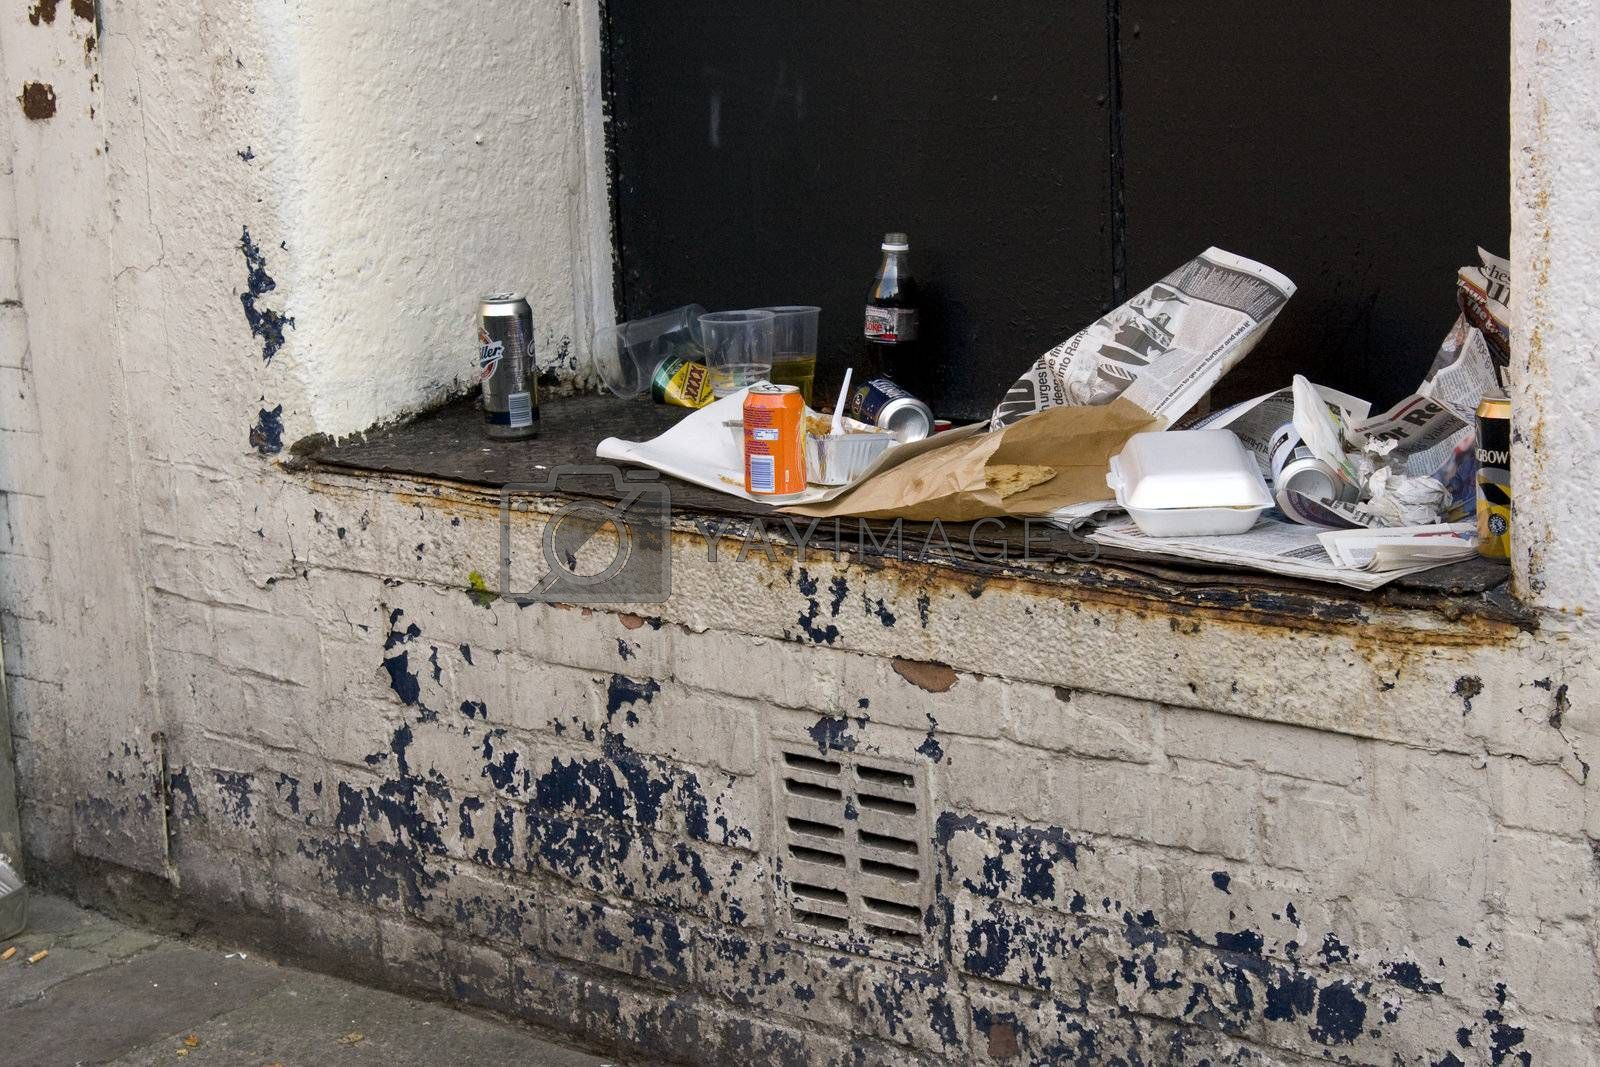 Rubbish left on a wall in an urban environment